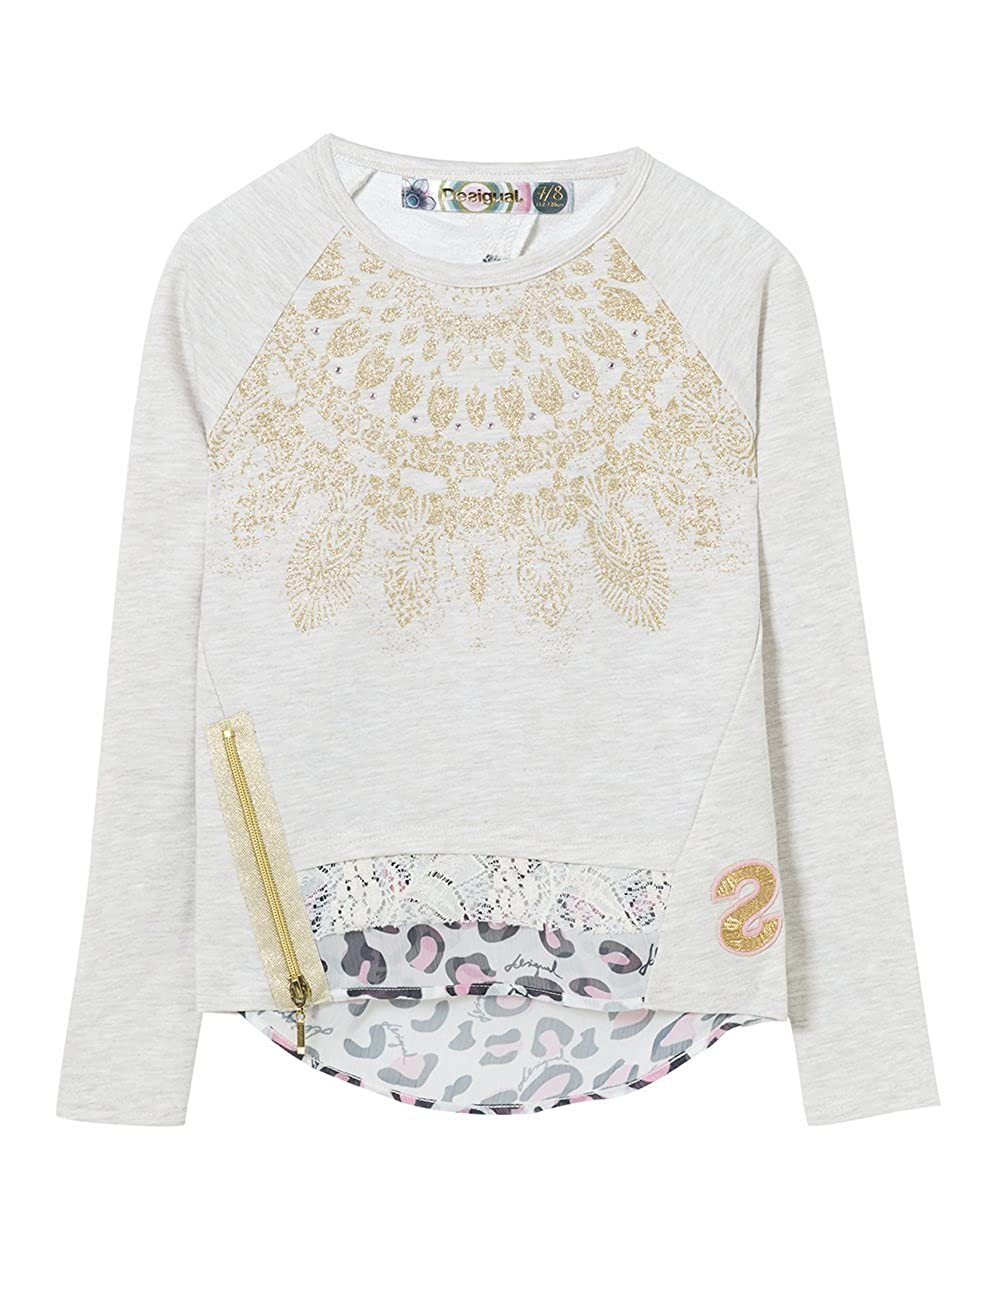 Desigual Girls Sweatshirt Cervantes Sizes 5-14